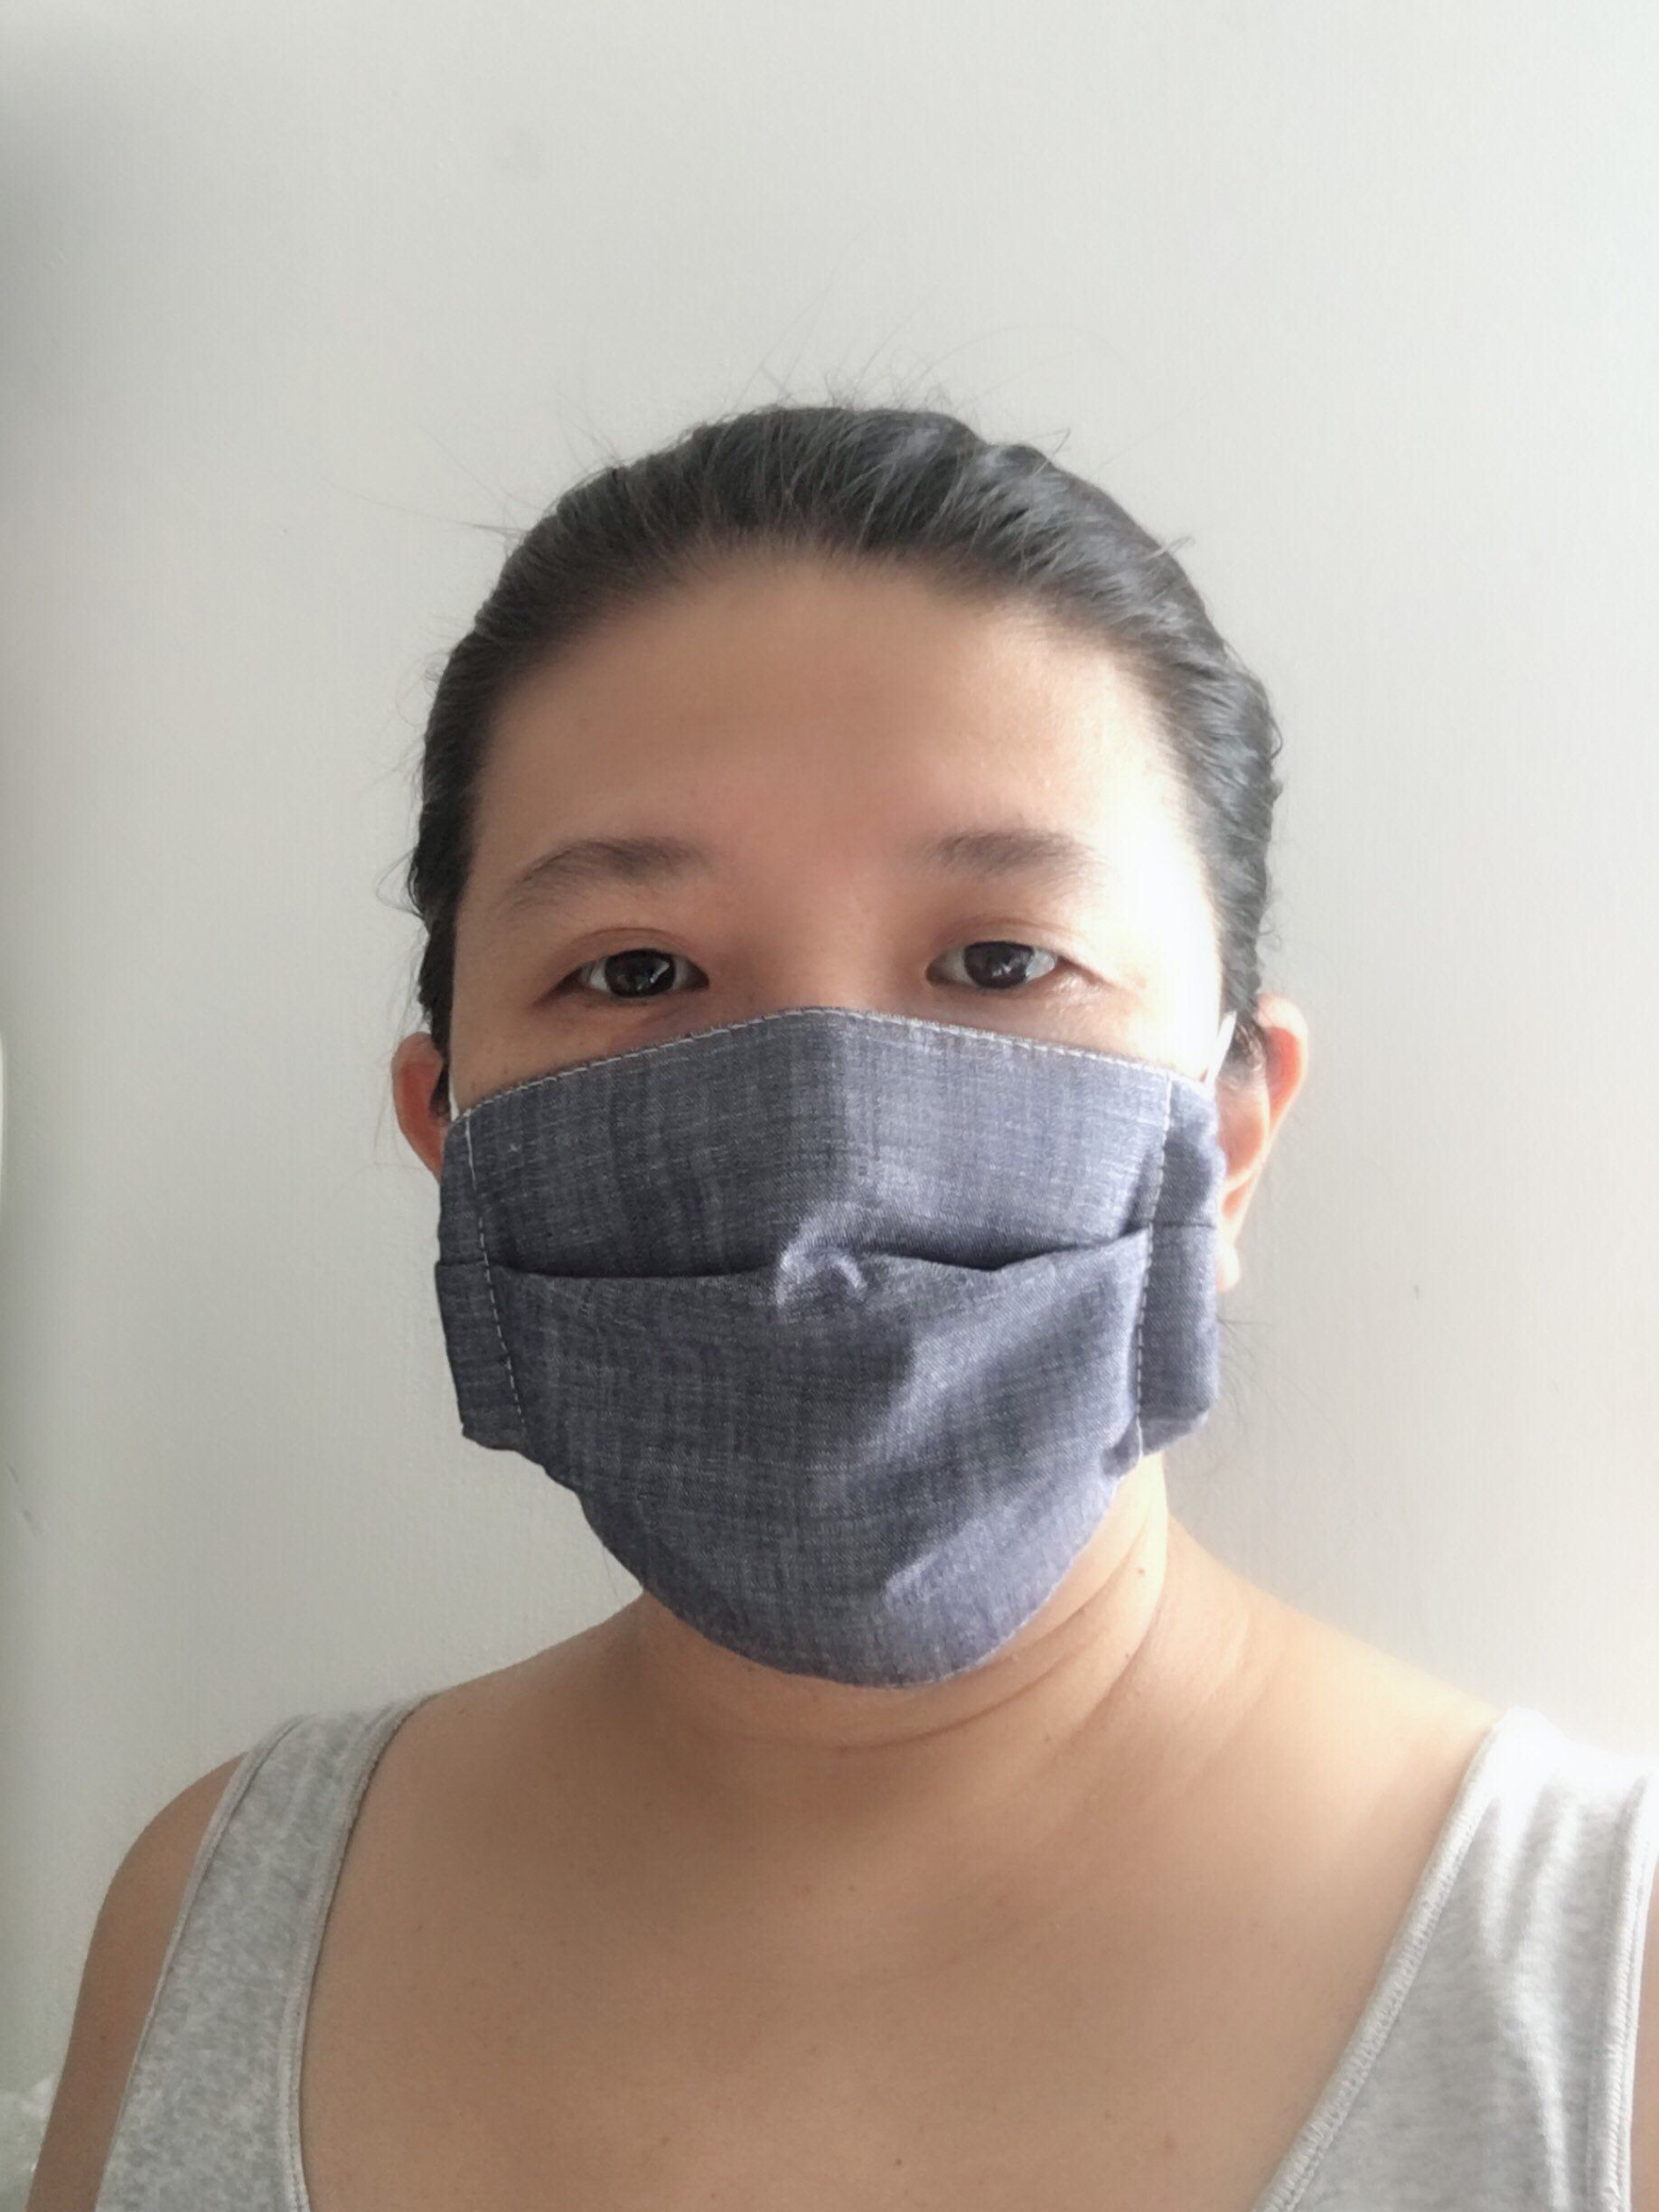 Excited To Share This Item From My Etsy Shop Surgical Mask Organic Trend Mask Allergy Dusk Mask Gem Free Face Mask Groomer Den Mask Face Mask Ear Loop